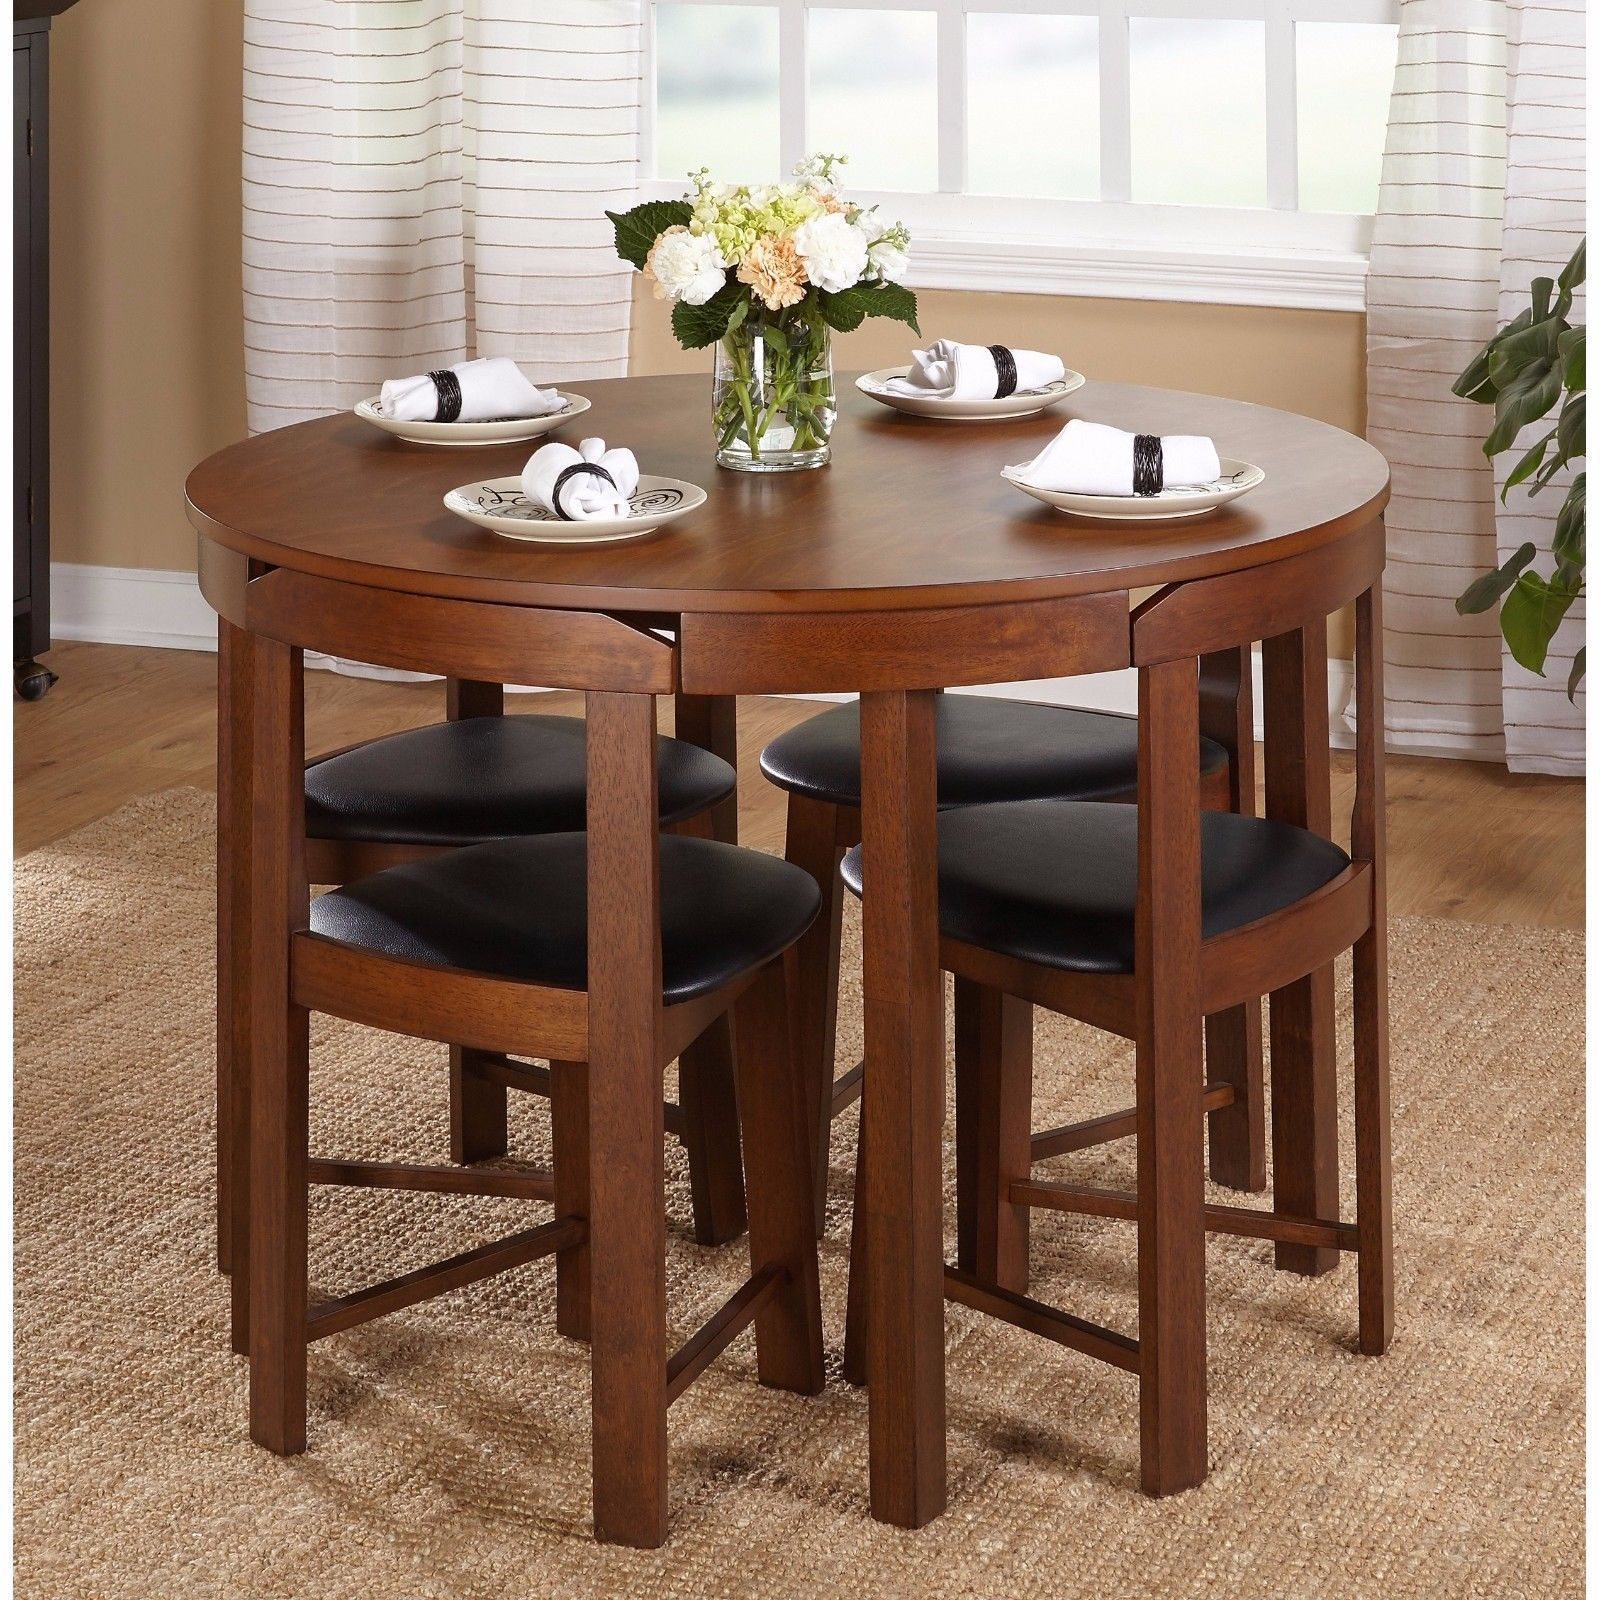 Dining Table Set For 4 Small Spaces Round Kitchen Table and Chairs & Dining Table Set For 4 Small Spaces Round Kitchen Table and Chairs ...